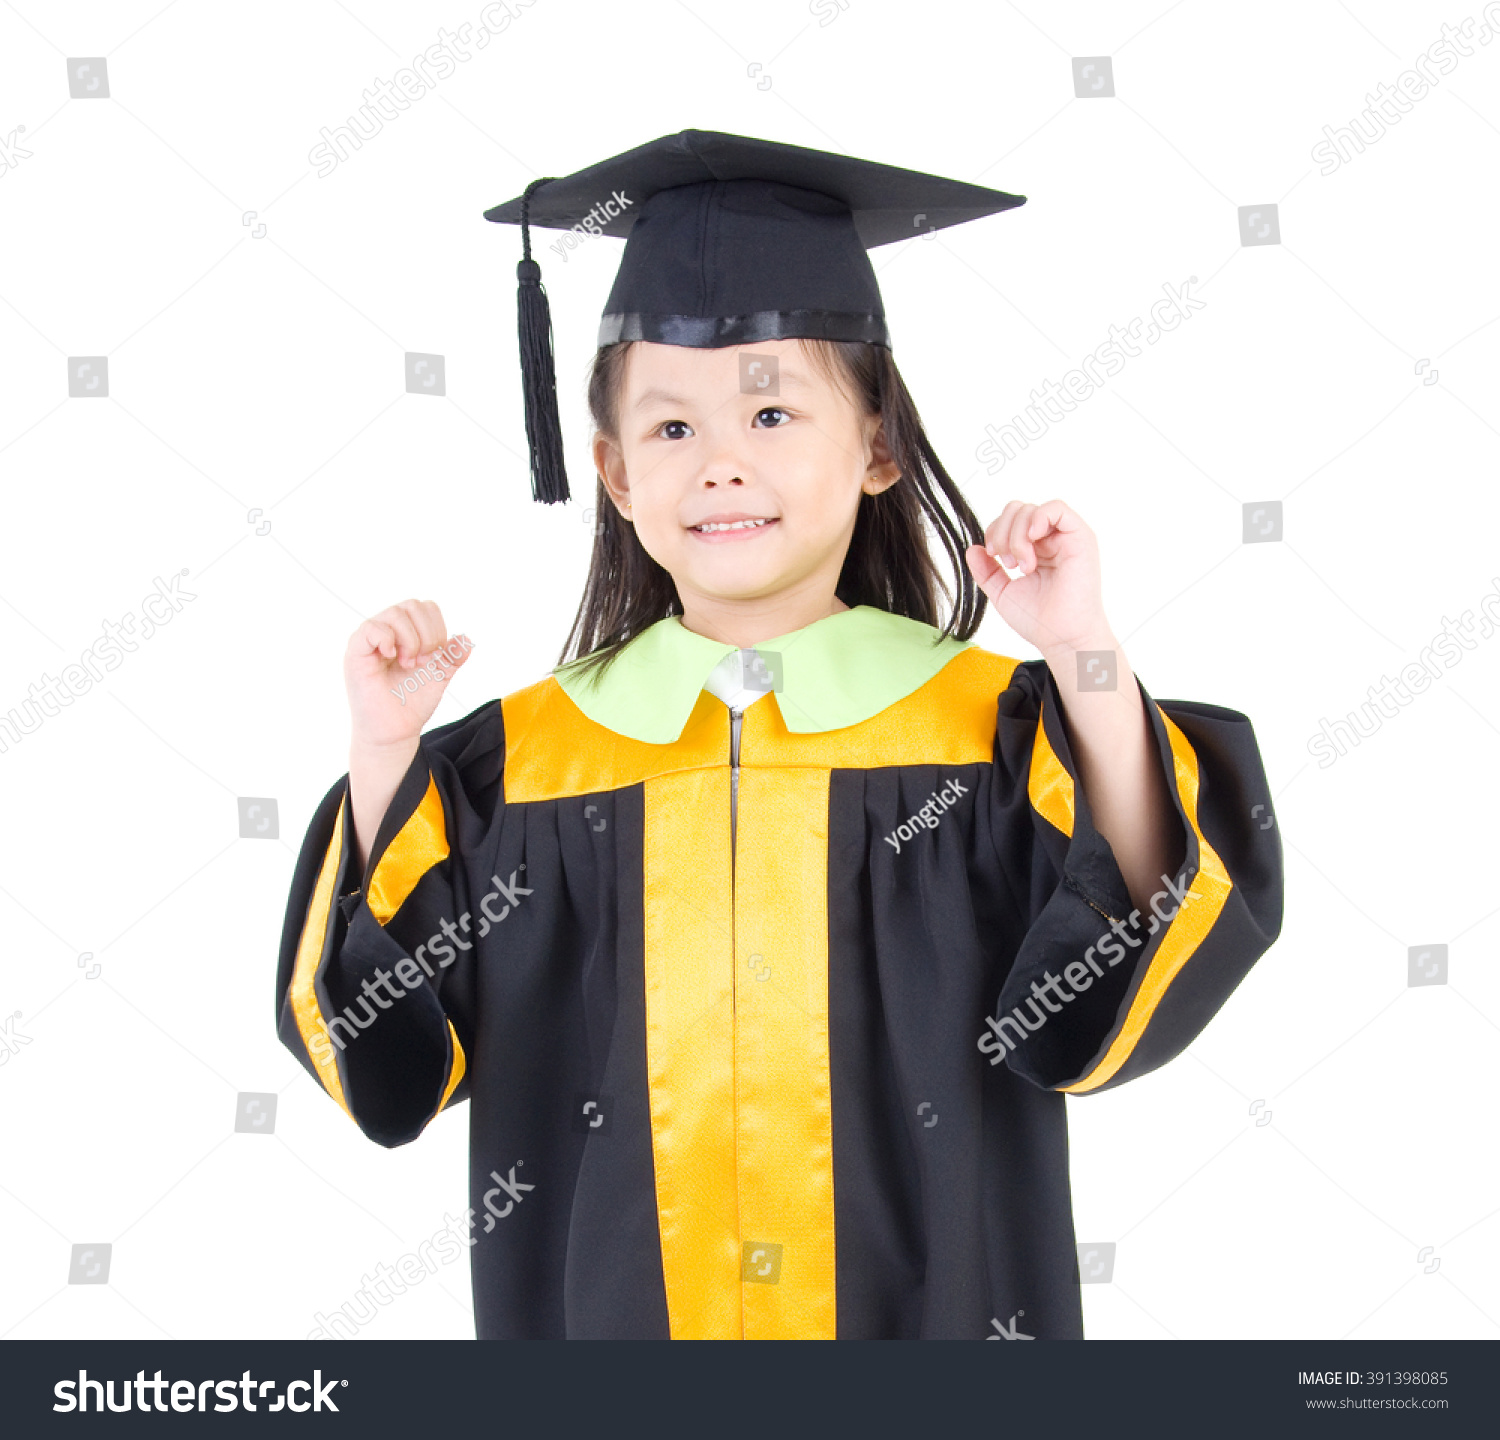 Asian Kid Graduation Gown Stock Photo (Royalty Free) 391398085 ...